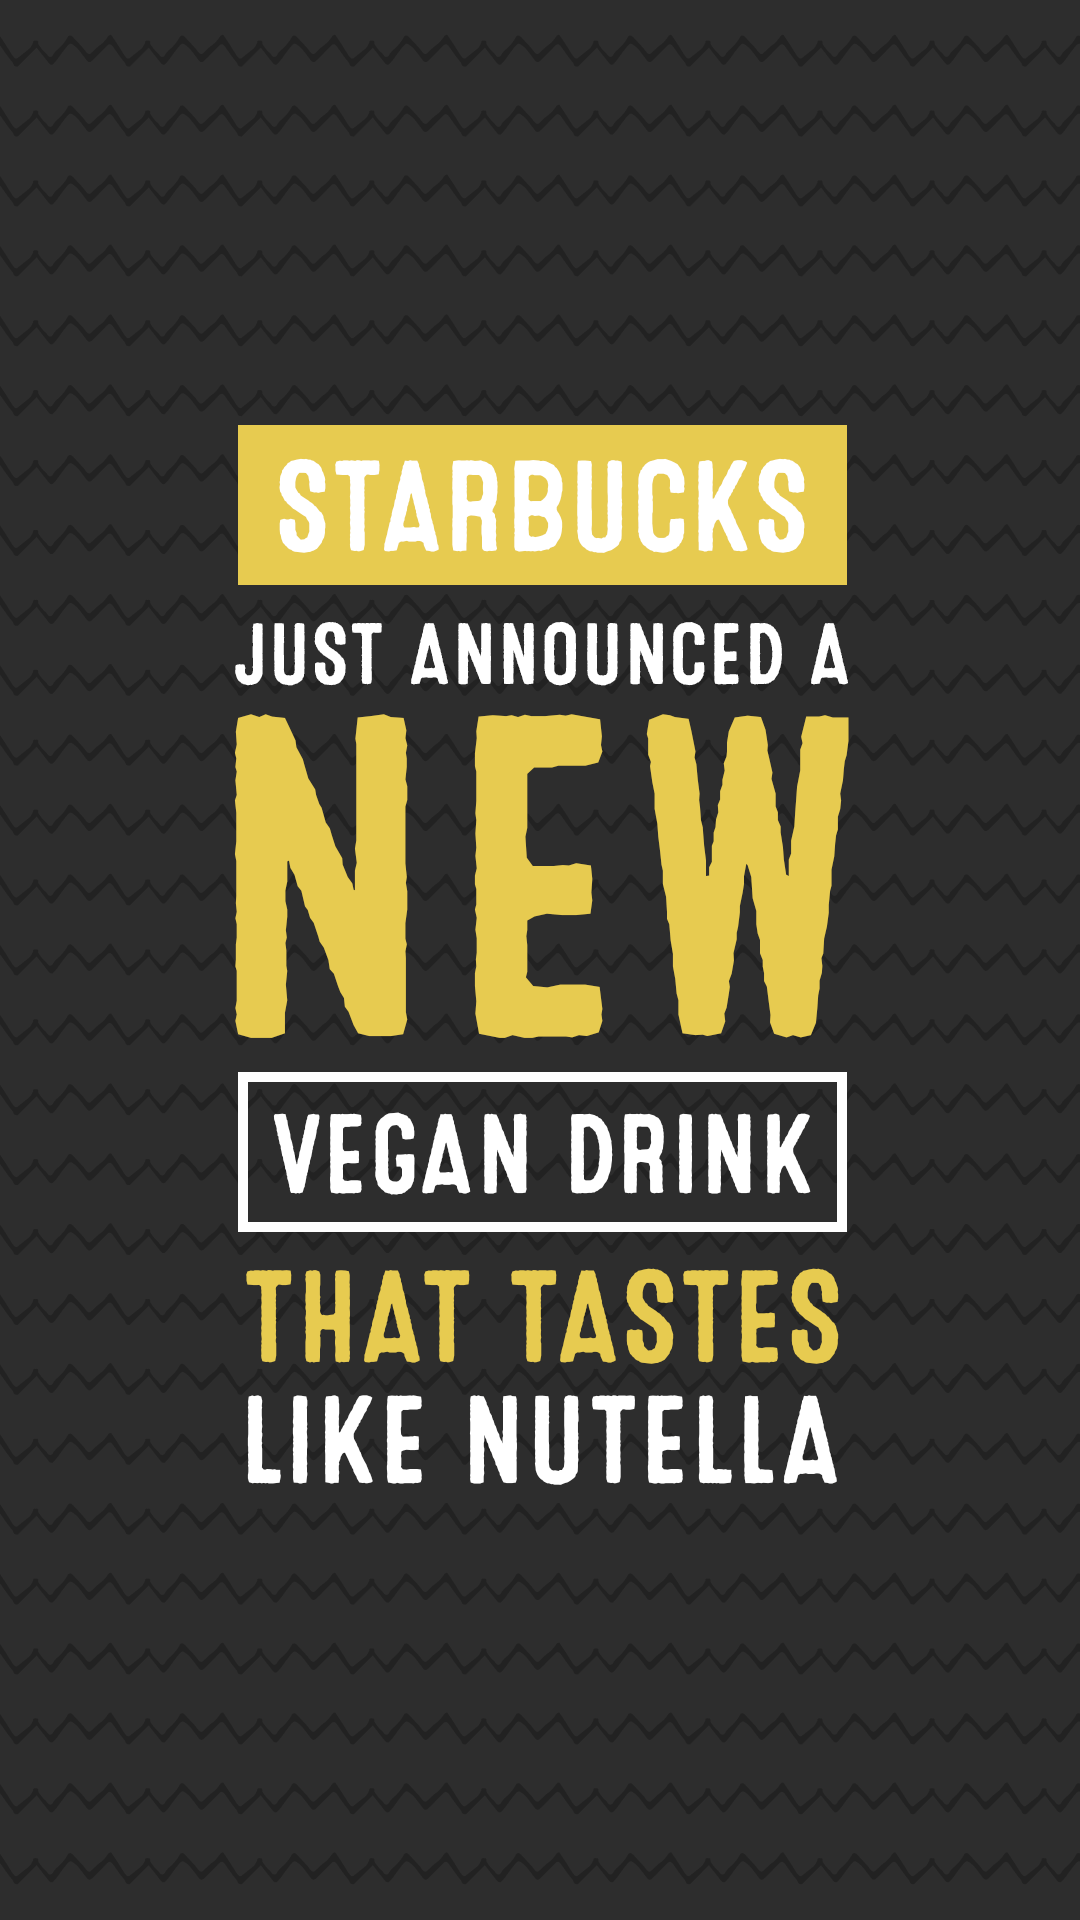 Starbucks Just Announced a New Vegan Drink That Tastes Like Nutella